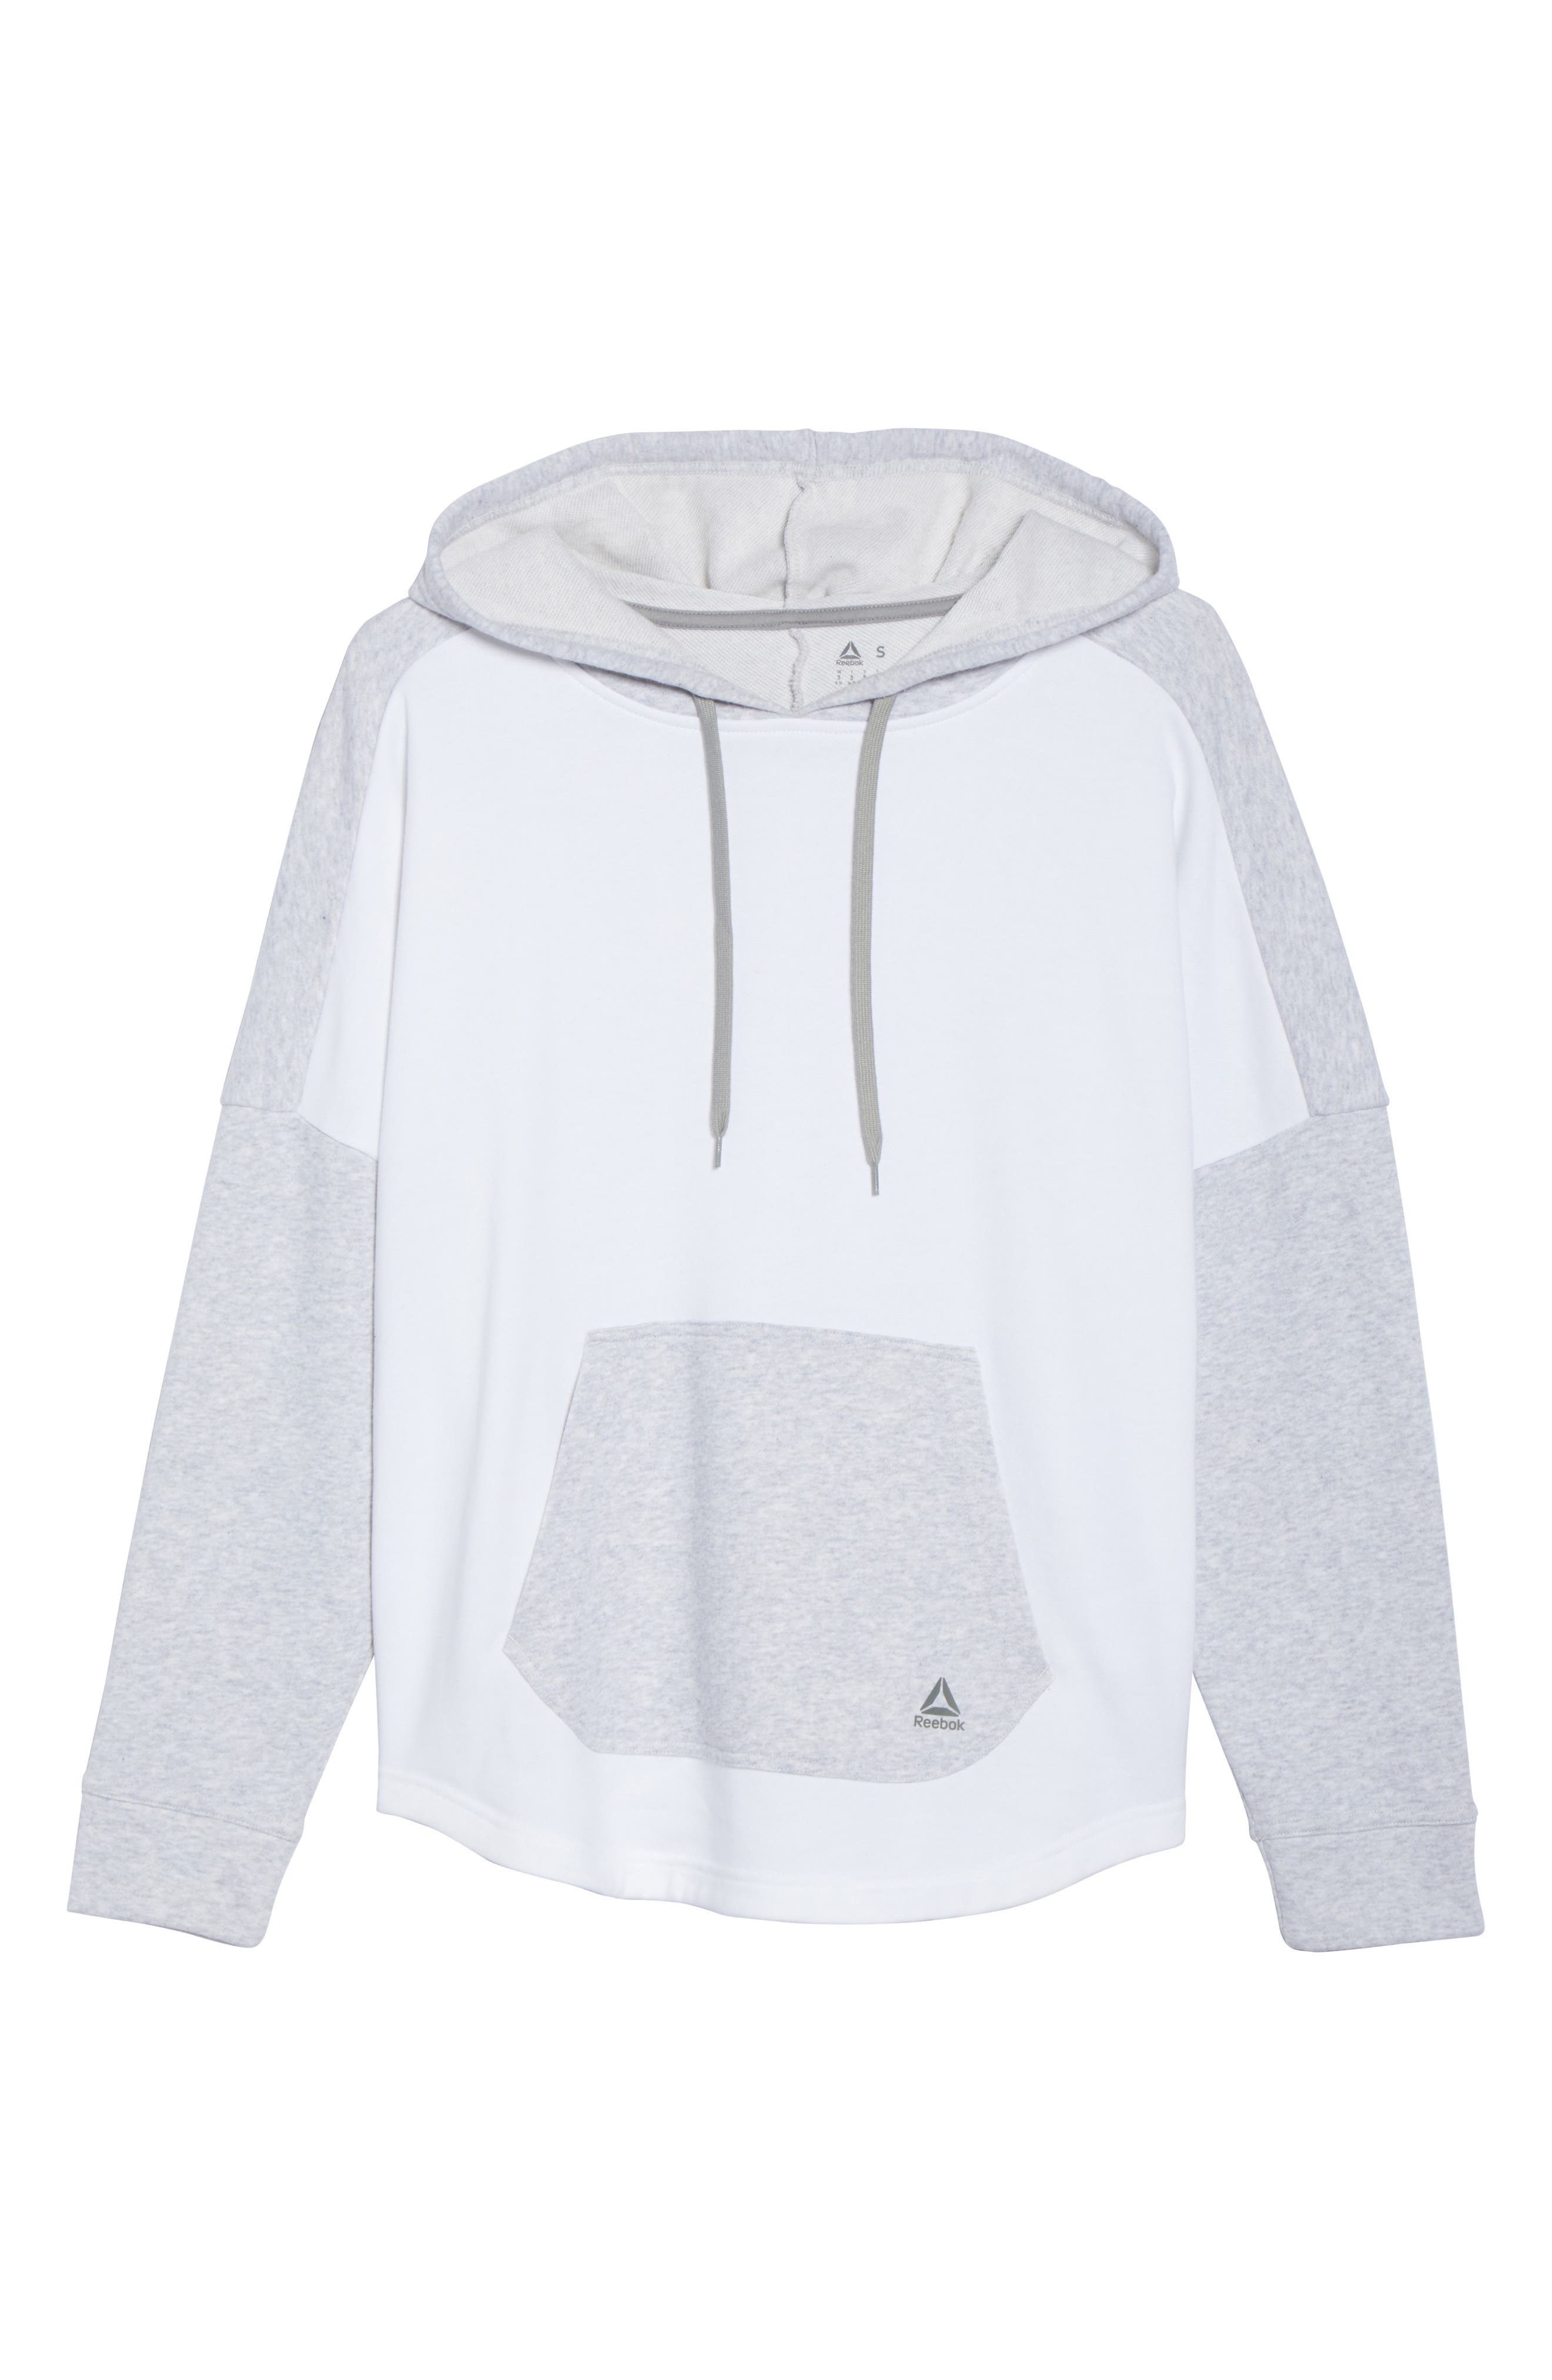 French Terry Tunic Hoodie,                             Alternate thumbnail 7, color,                             Light Grey Heather